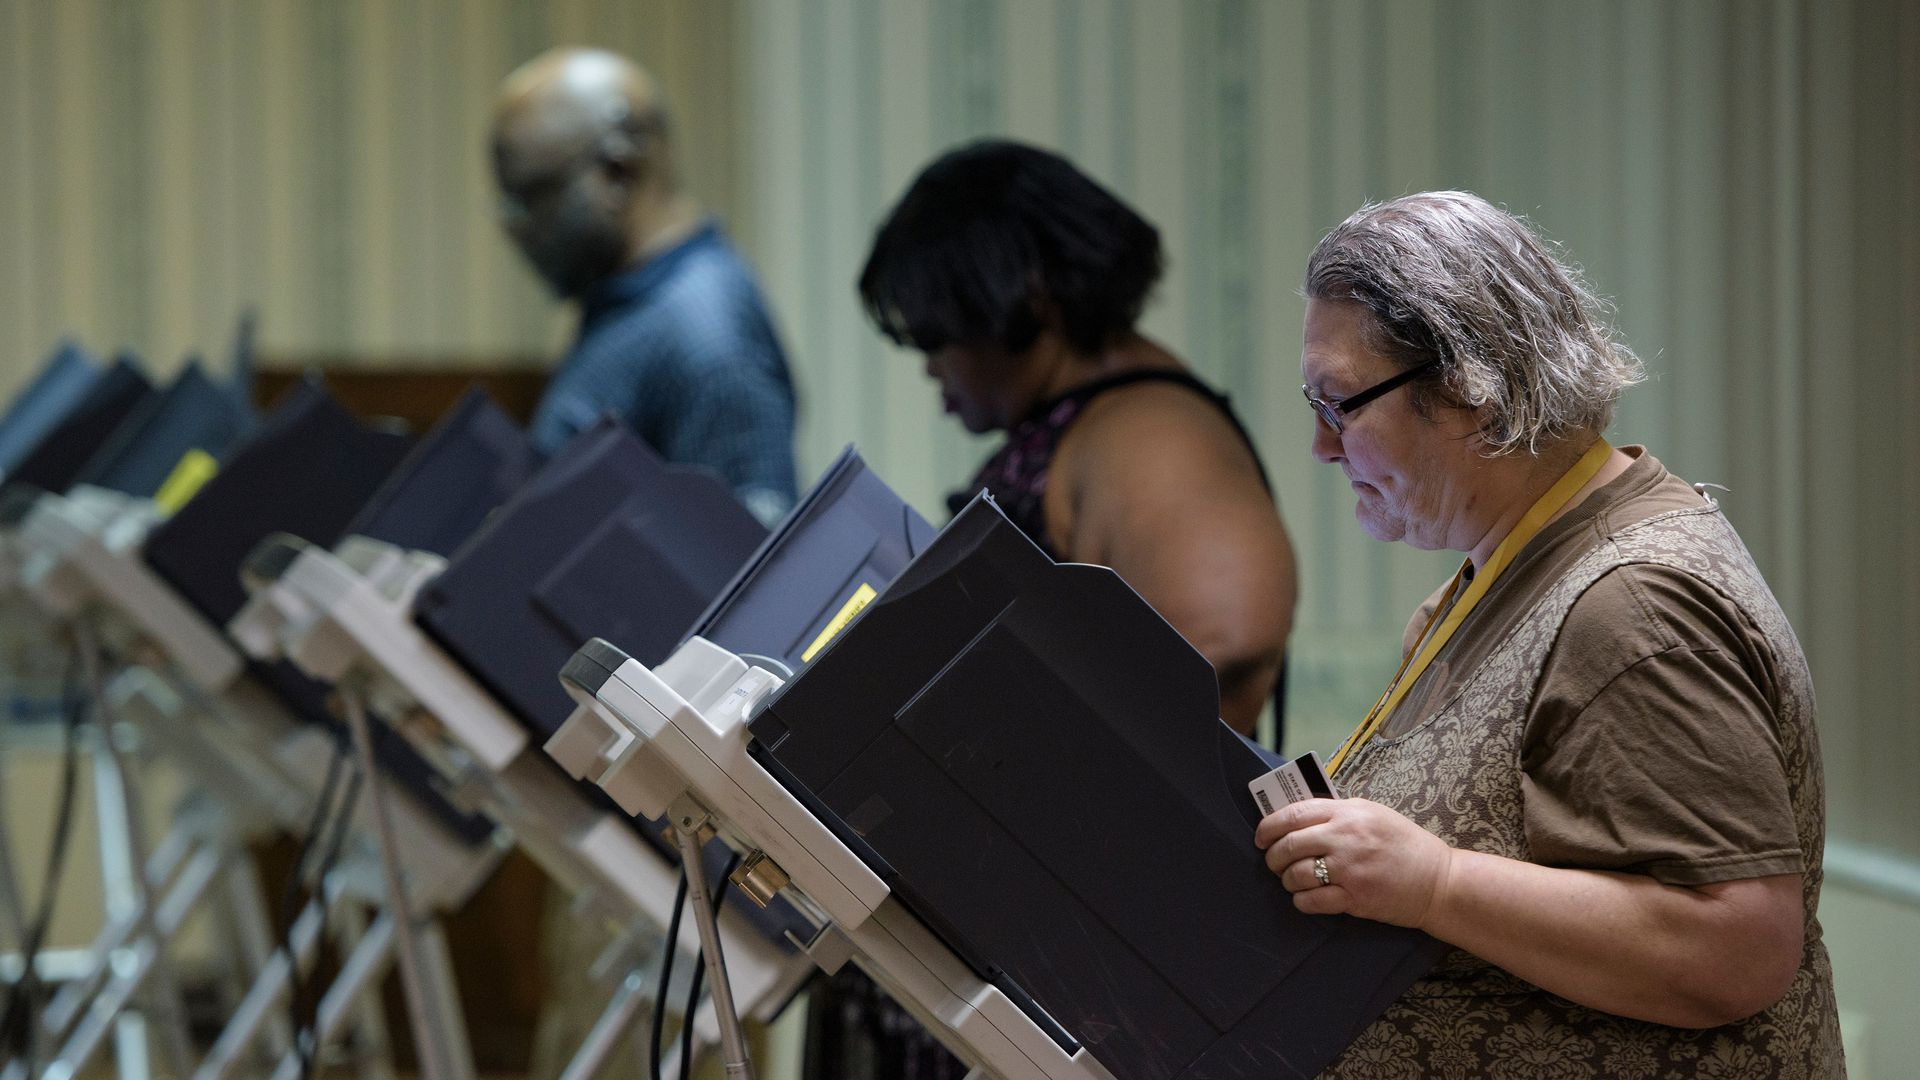 Voters at voting machines